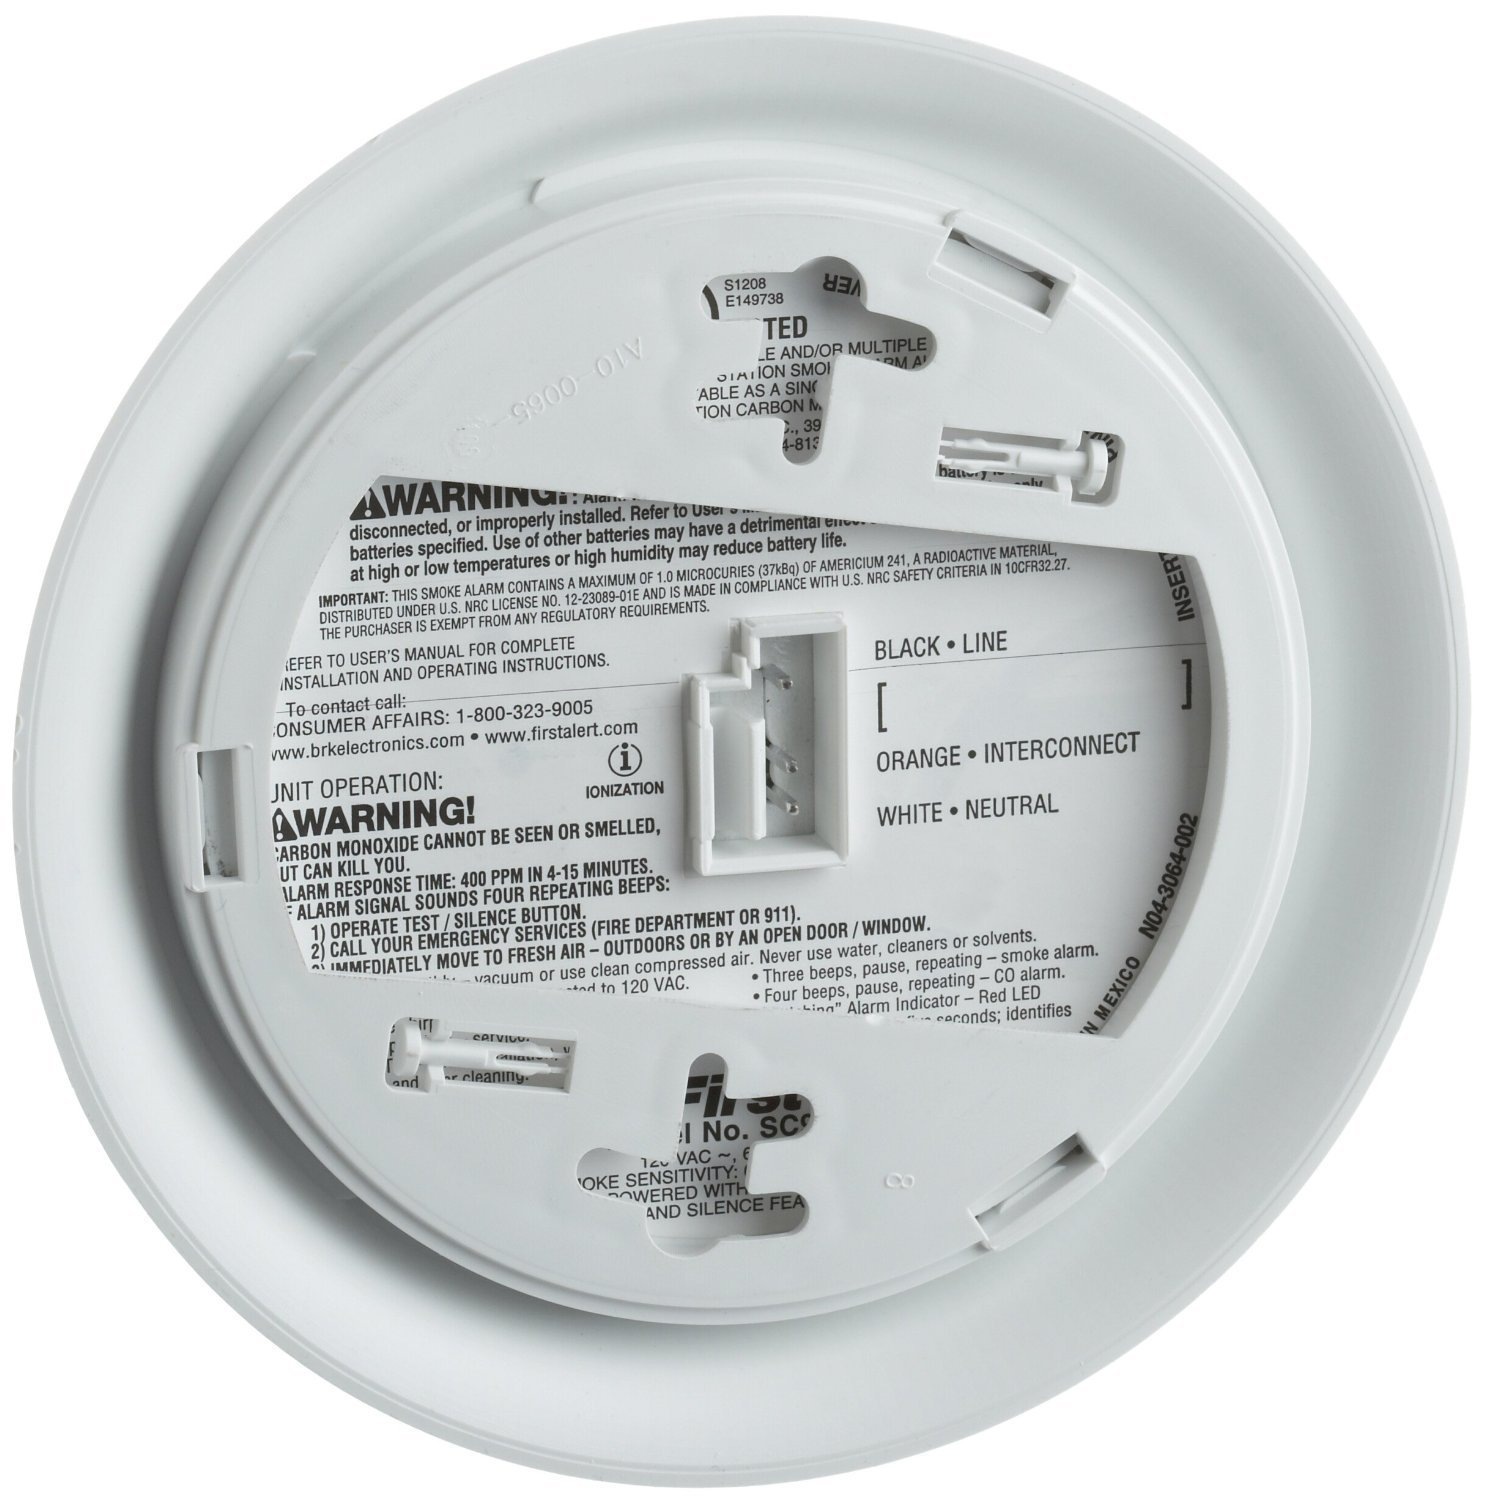 BRK SC9120B Smoke and Carbon Monoxide Alarms and Detectors Lot of 10 by BRK Brands (Image #2)